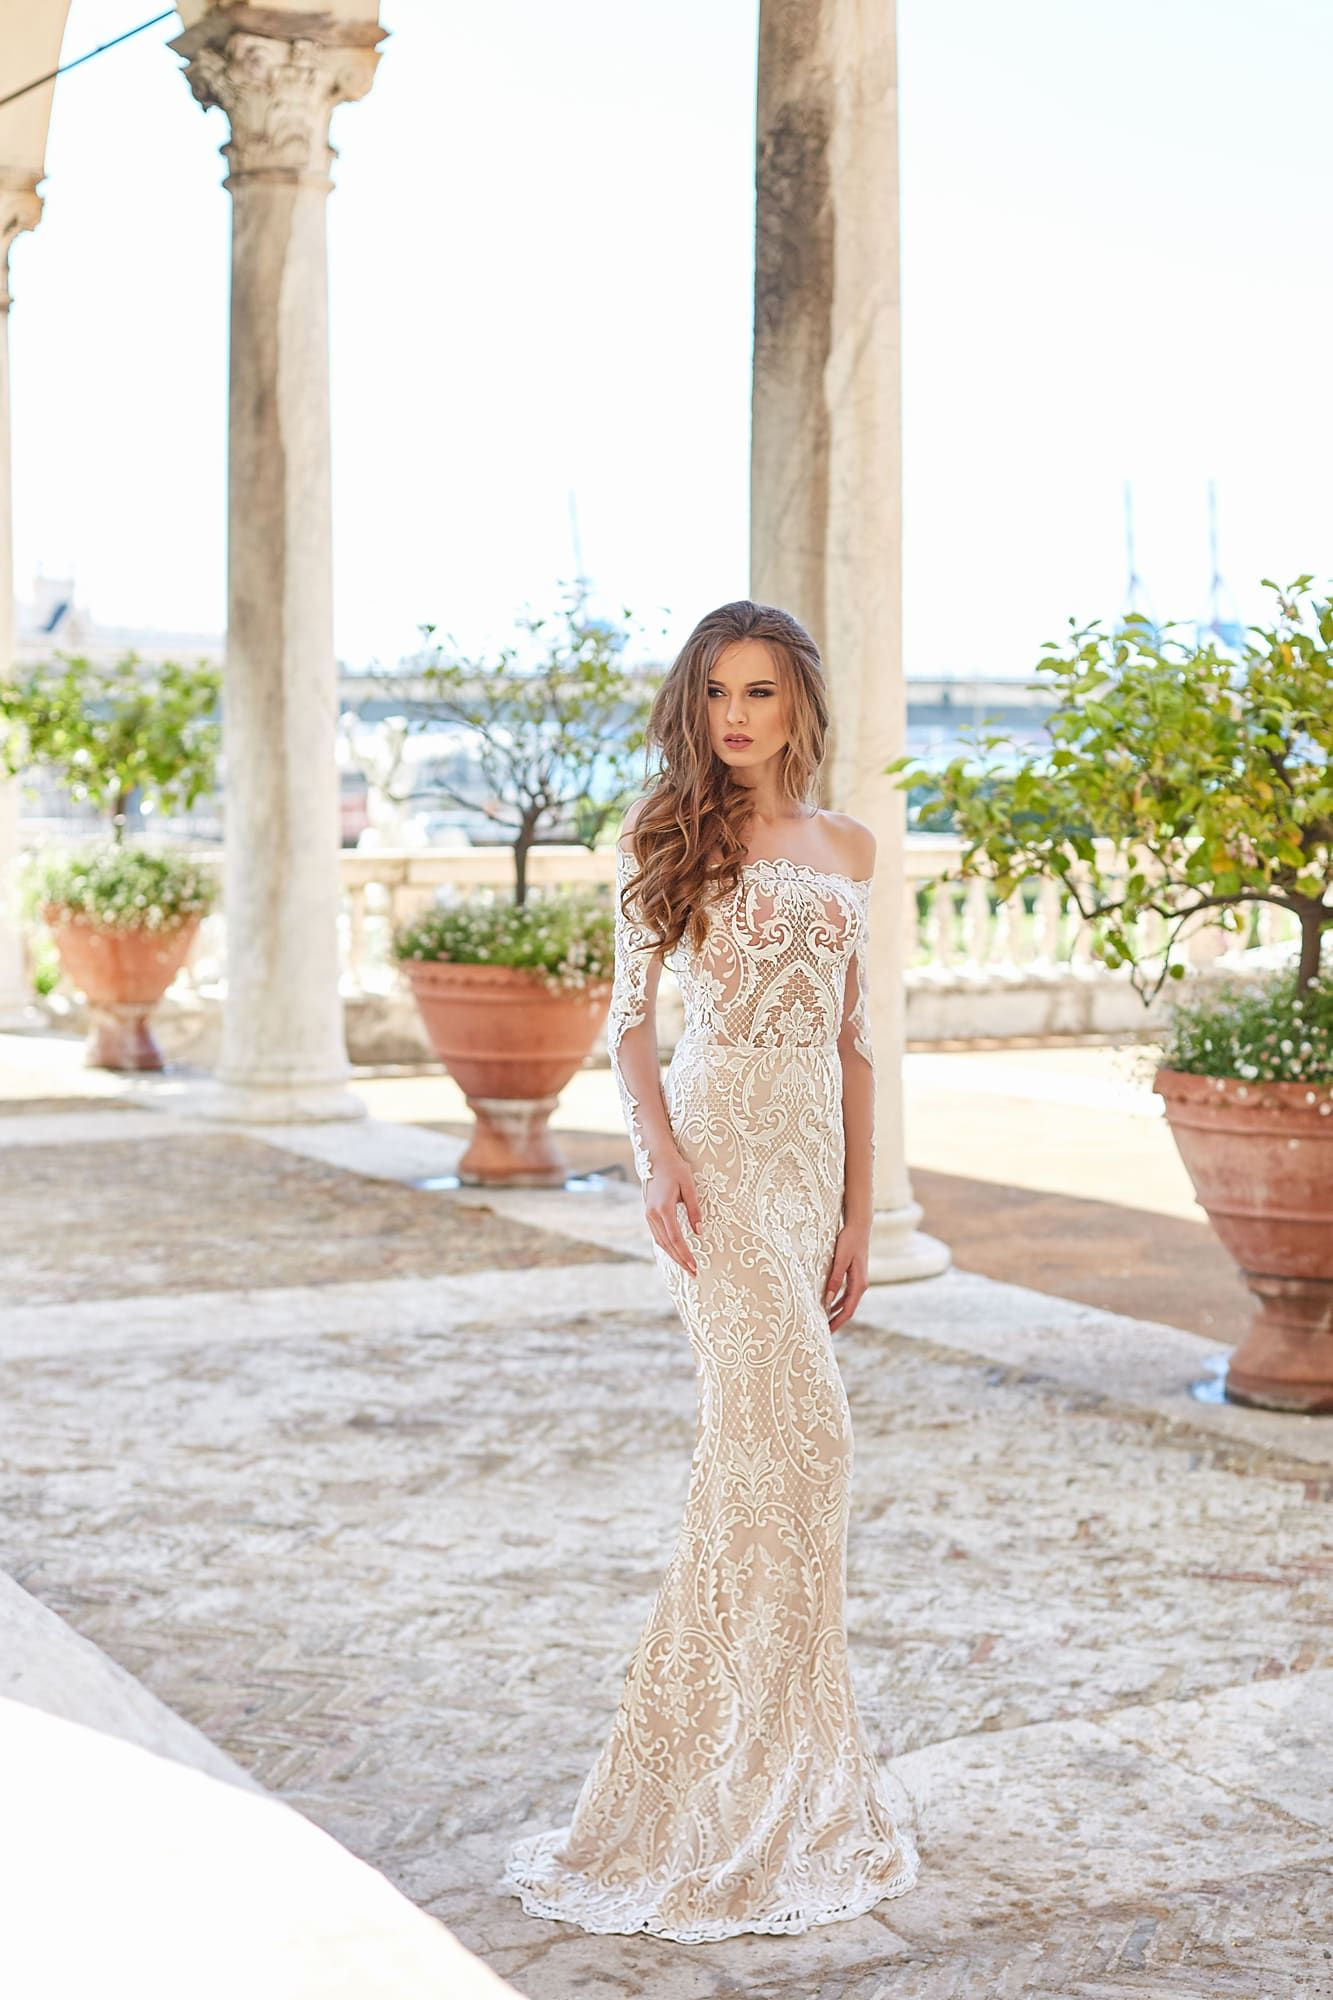 6f0f88e3c42 JAMALA wedding dress by OKSANA MUKHA in Charmé Gaby Bridal Gown boutique  Clearwater FL